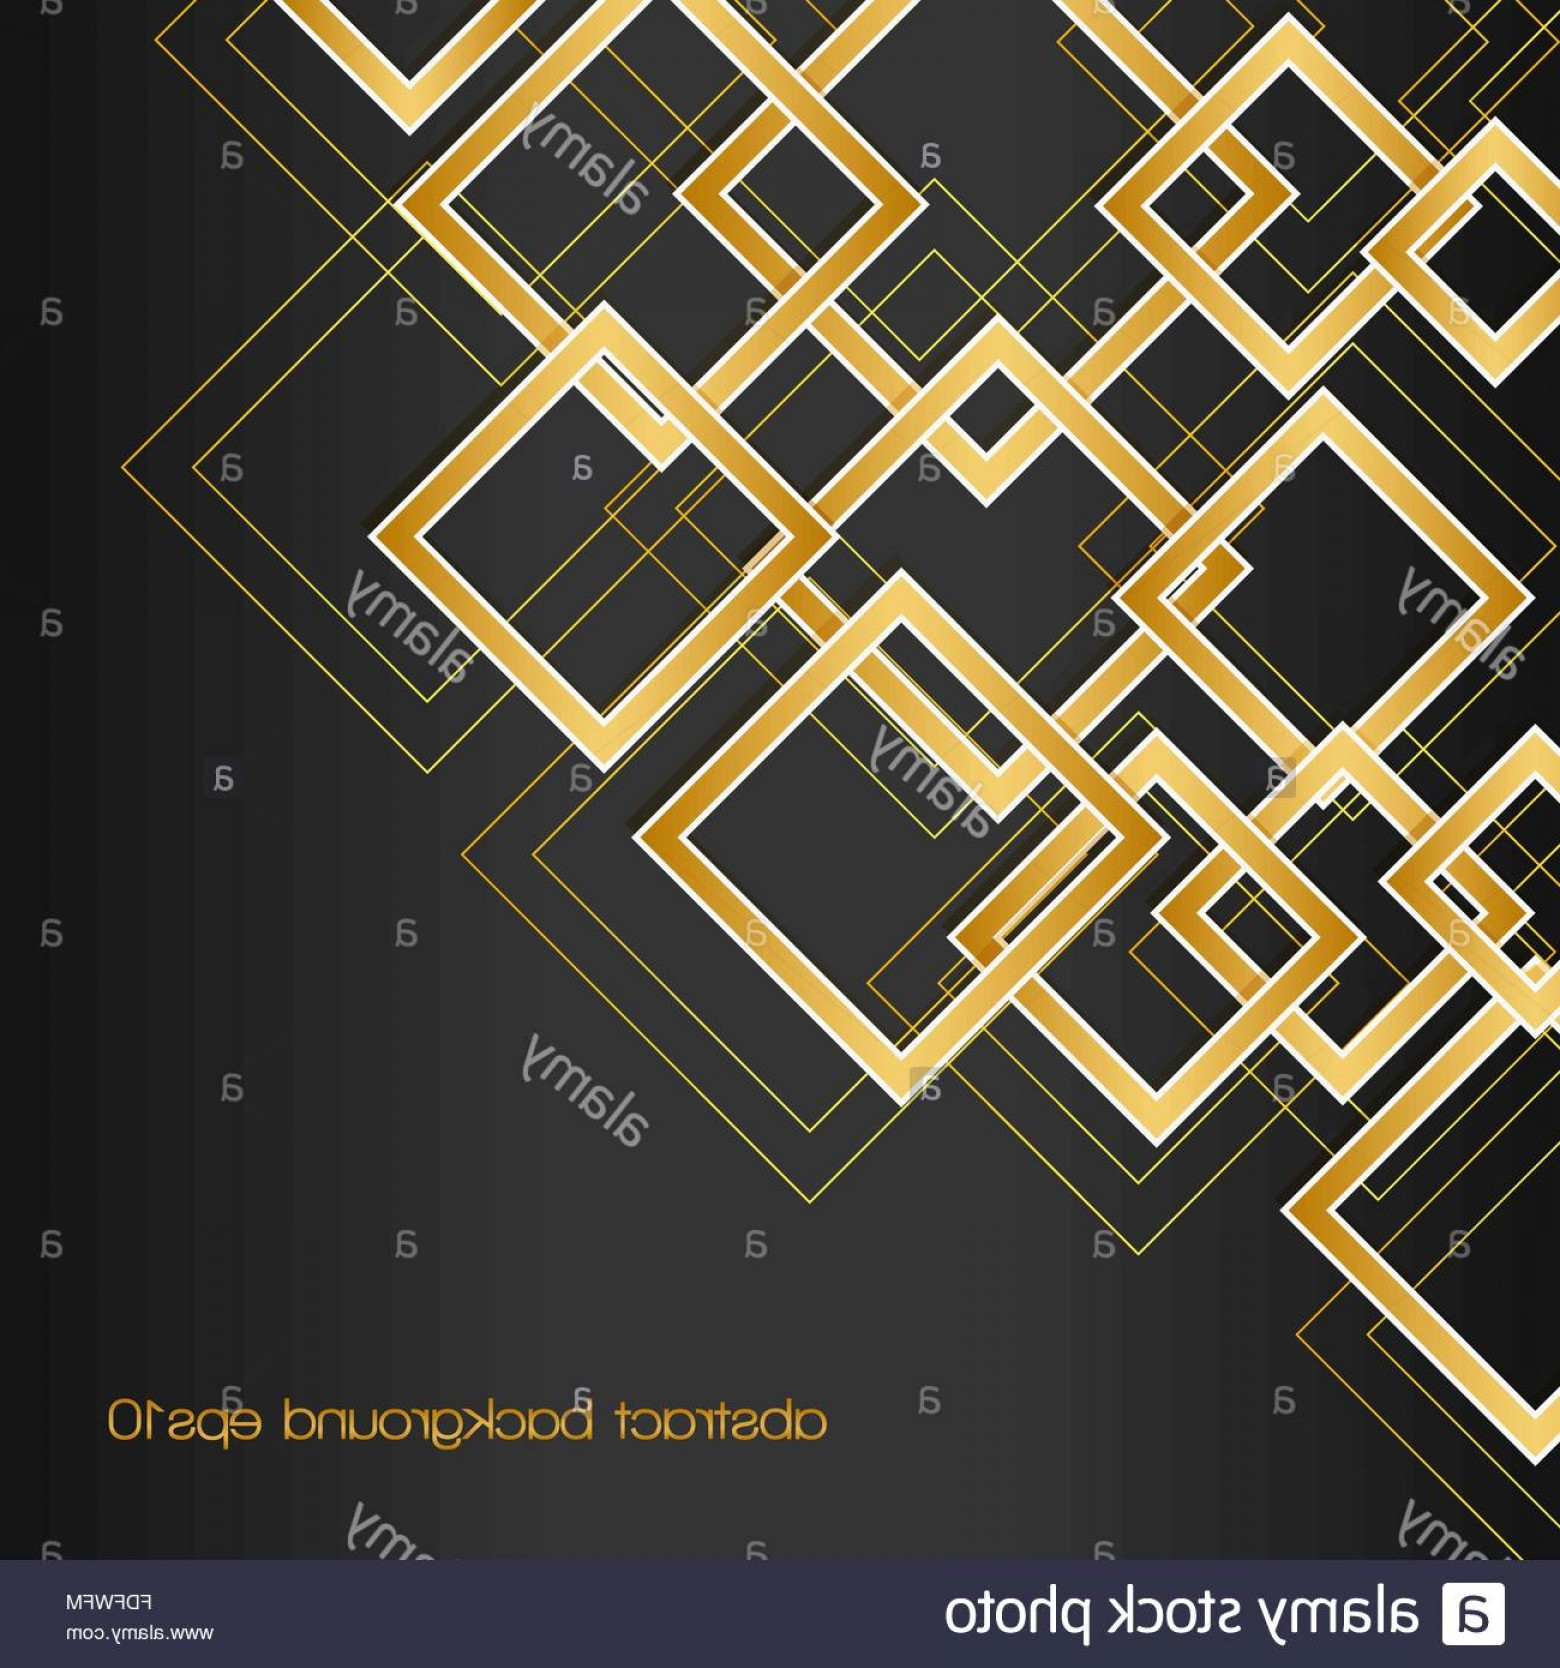 Black Abstract Lines Vector: Stock Photo Abstract Background With Golden Rhombus Frames And Lines On Black